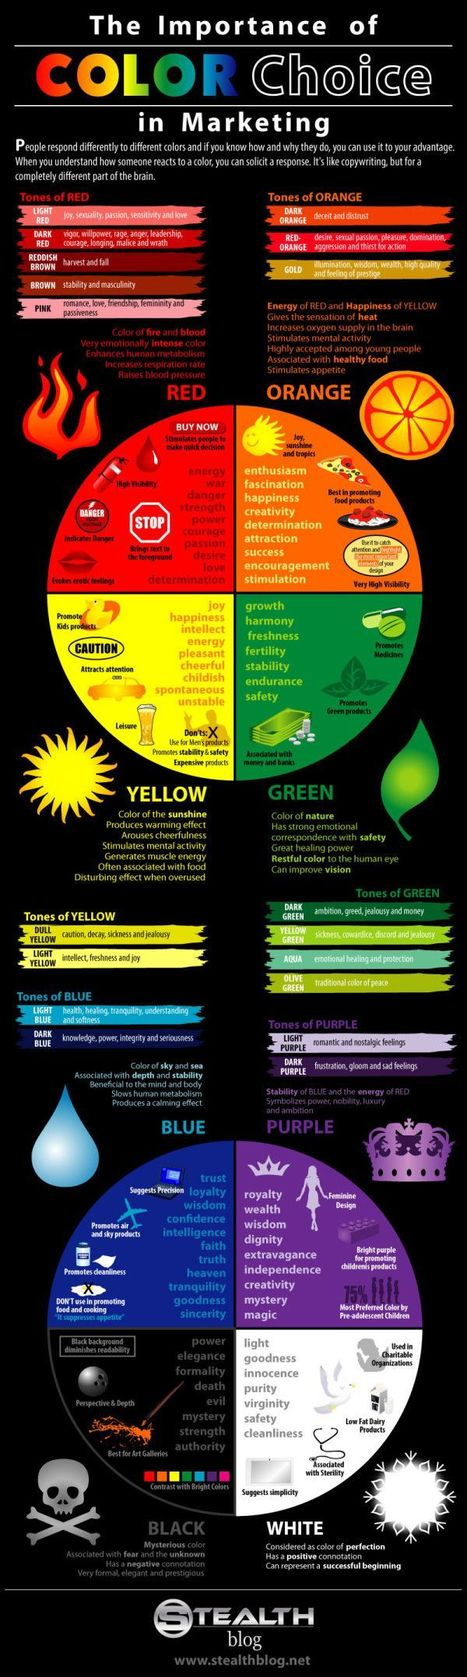 Colors in Marketing and Advertising. - Social Media & Marketing - Pinterest | Content marketing | Scoop.it